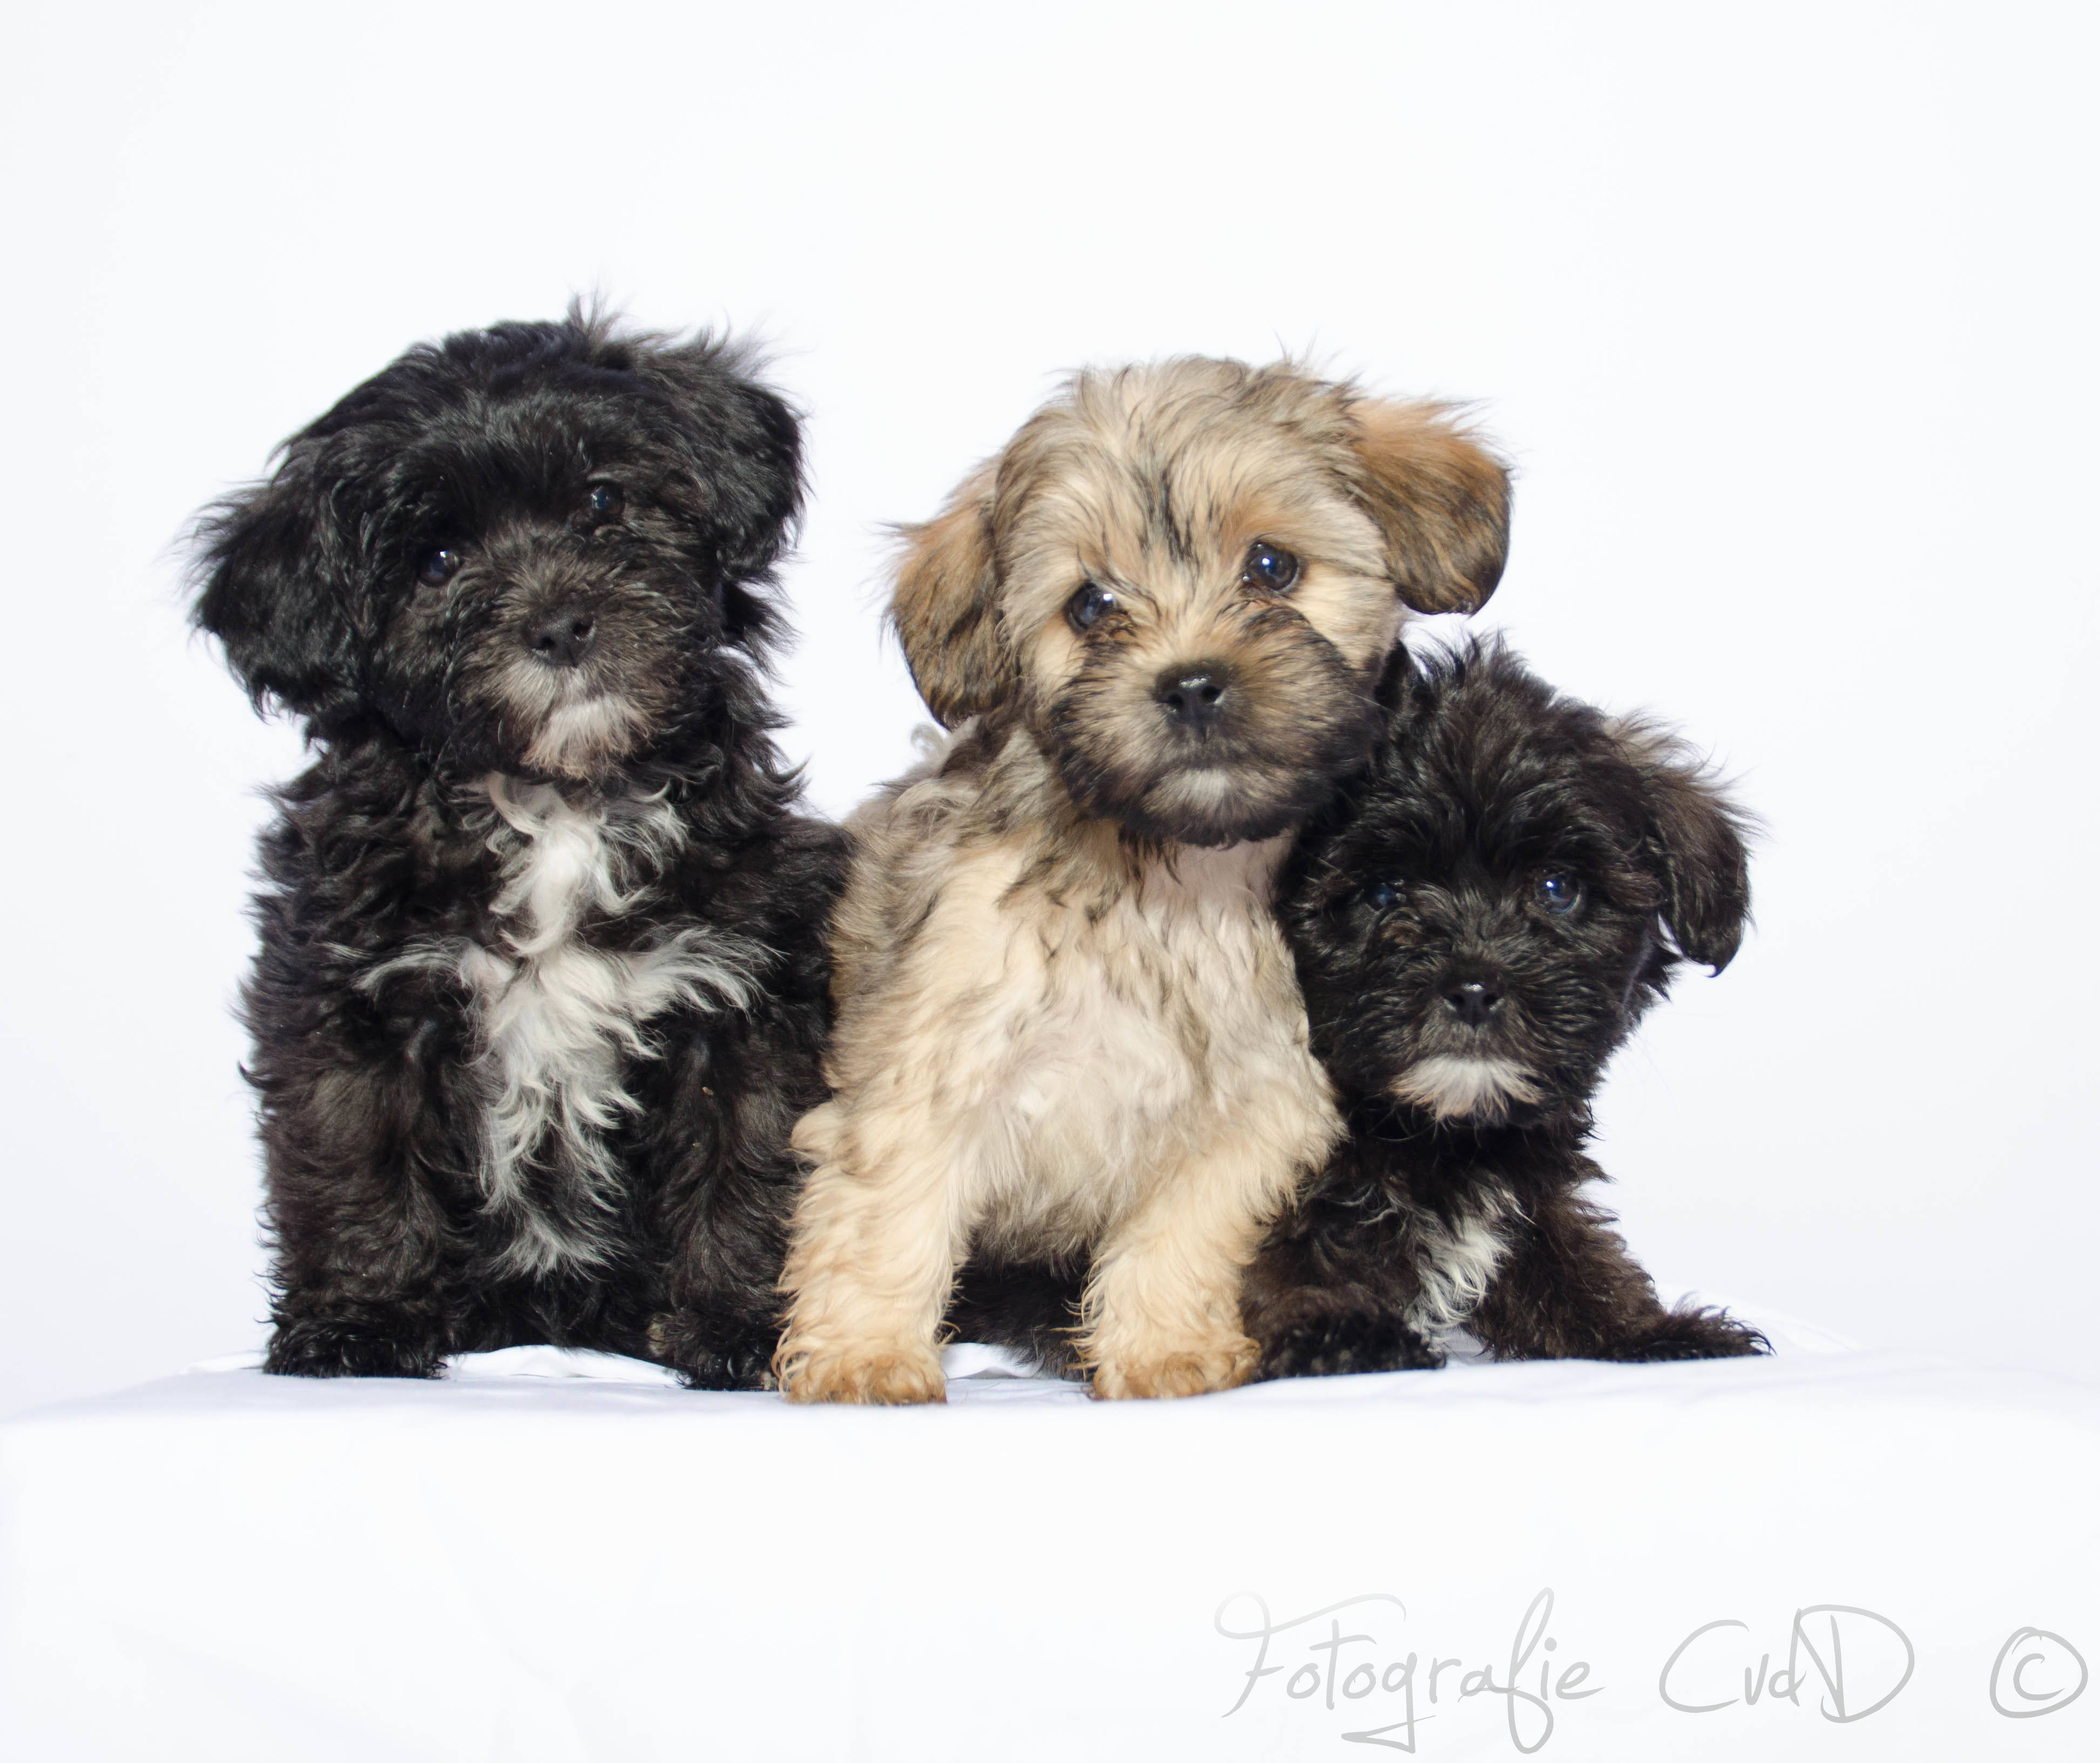 Shih Tzu x Poodle mix breed puppies consideration of